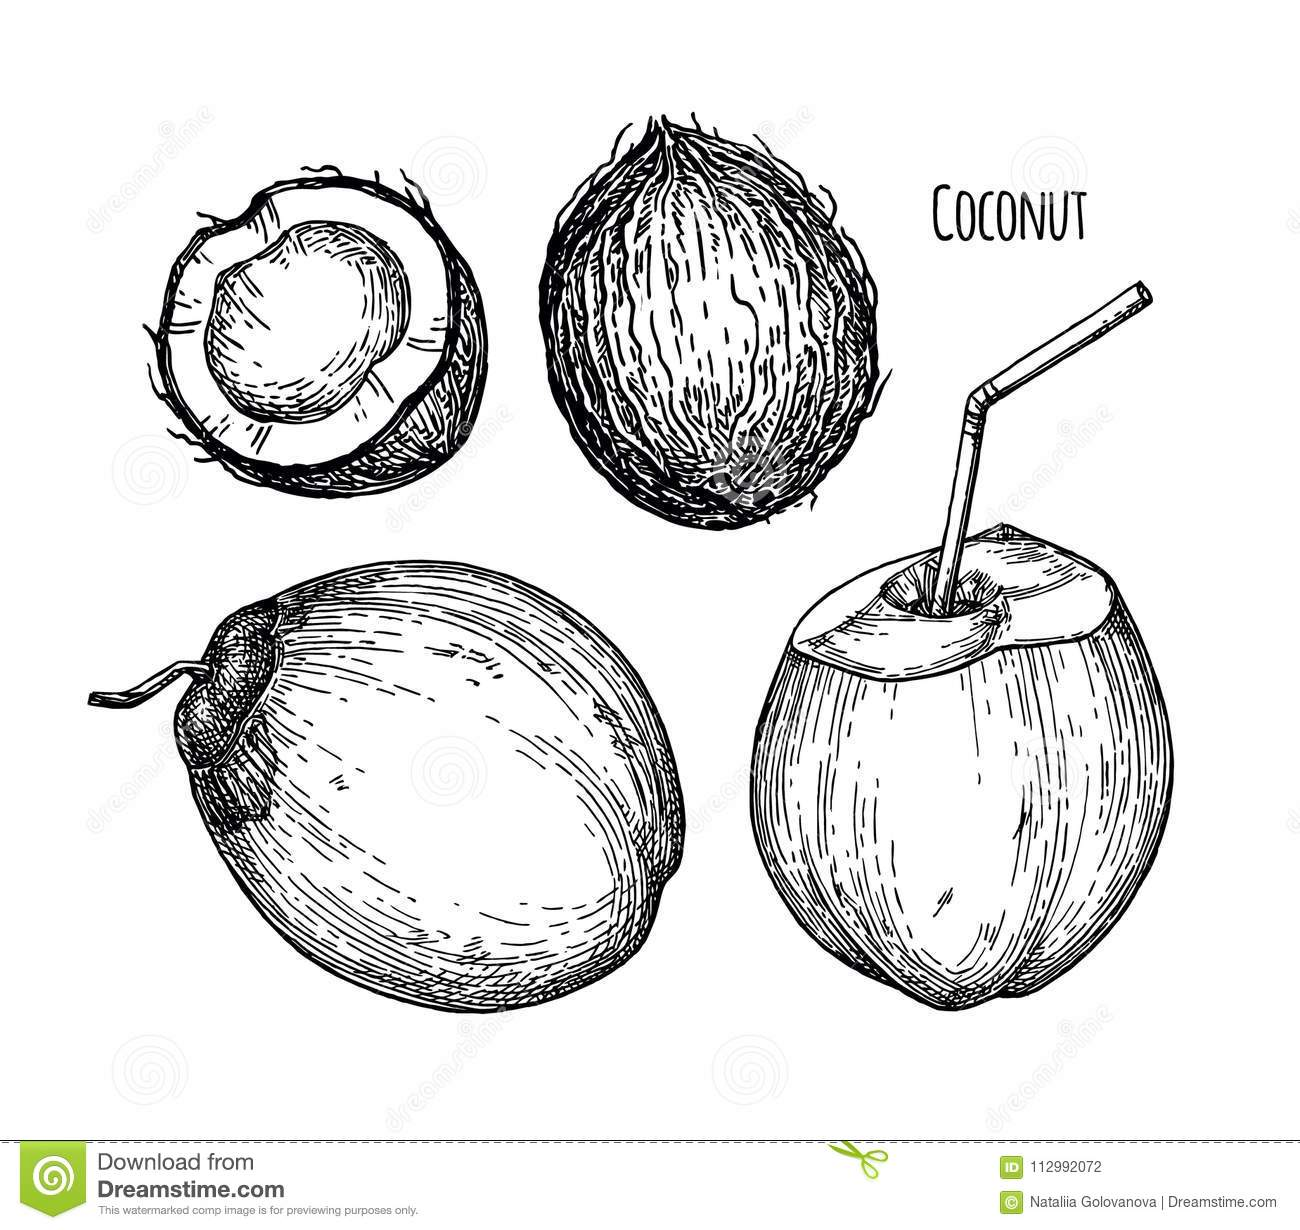 Ink sketch of young green coconuts.